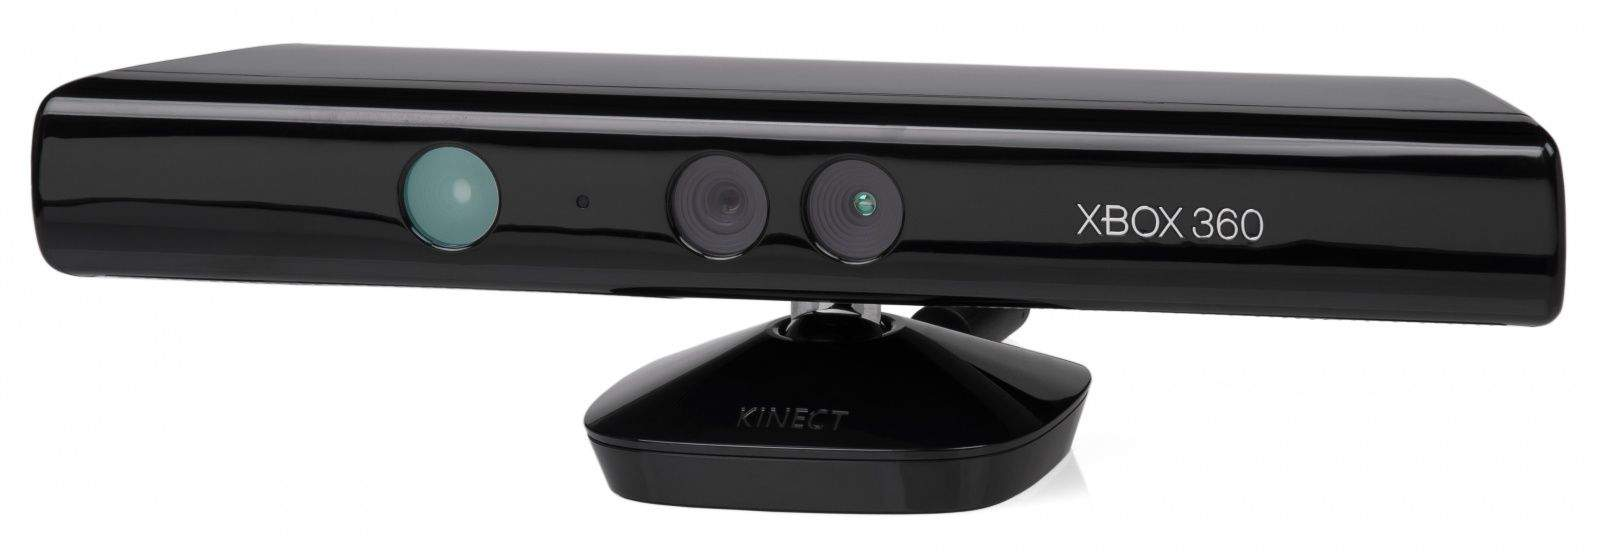 iOS 7 could soon have many of the capabilities of the Xbox 360 Kinect.